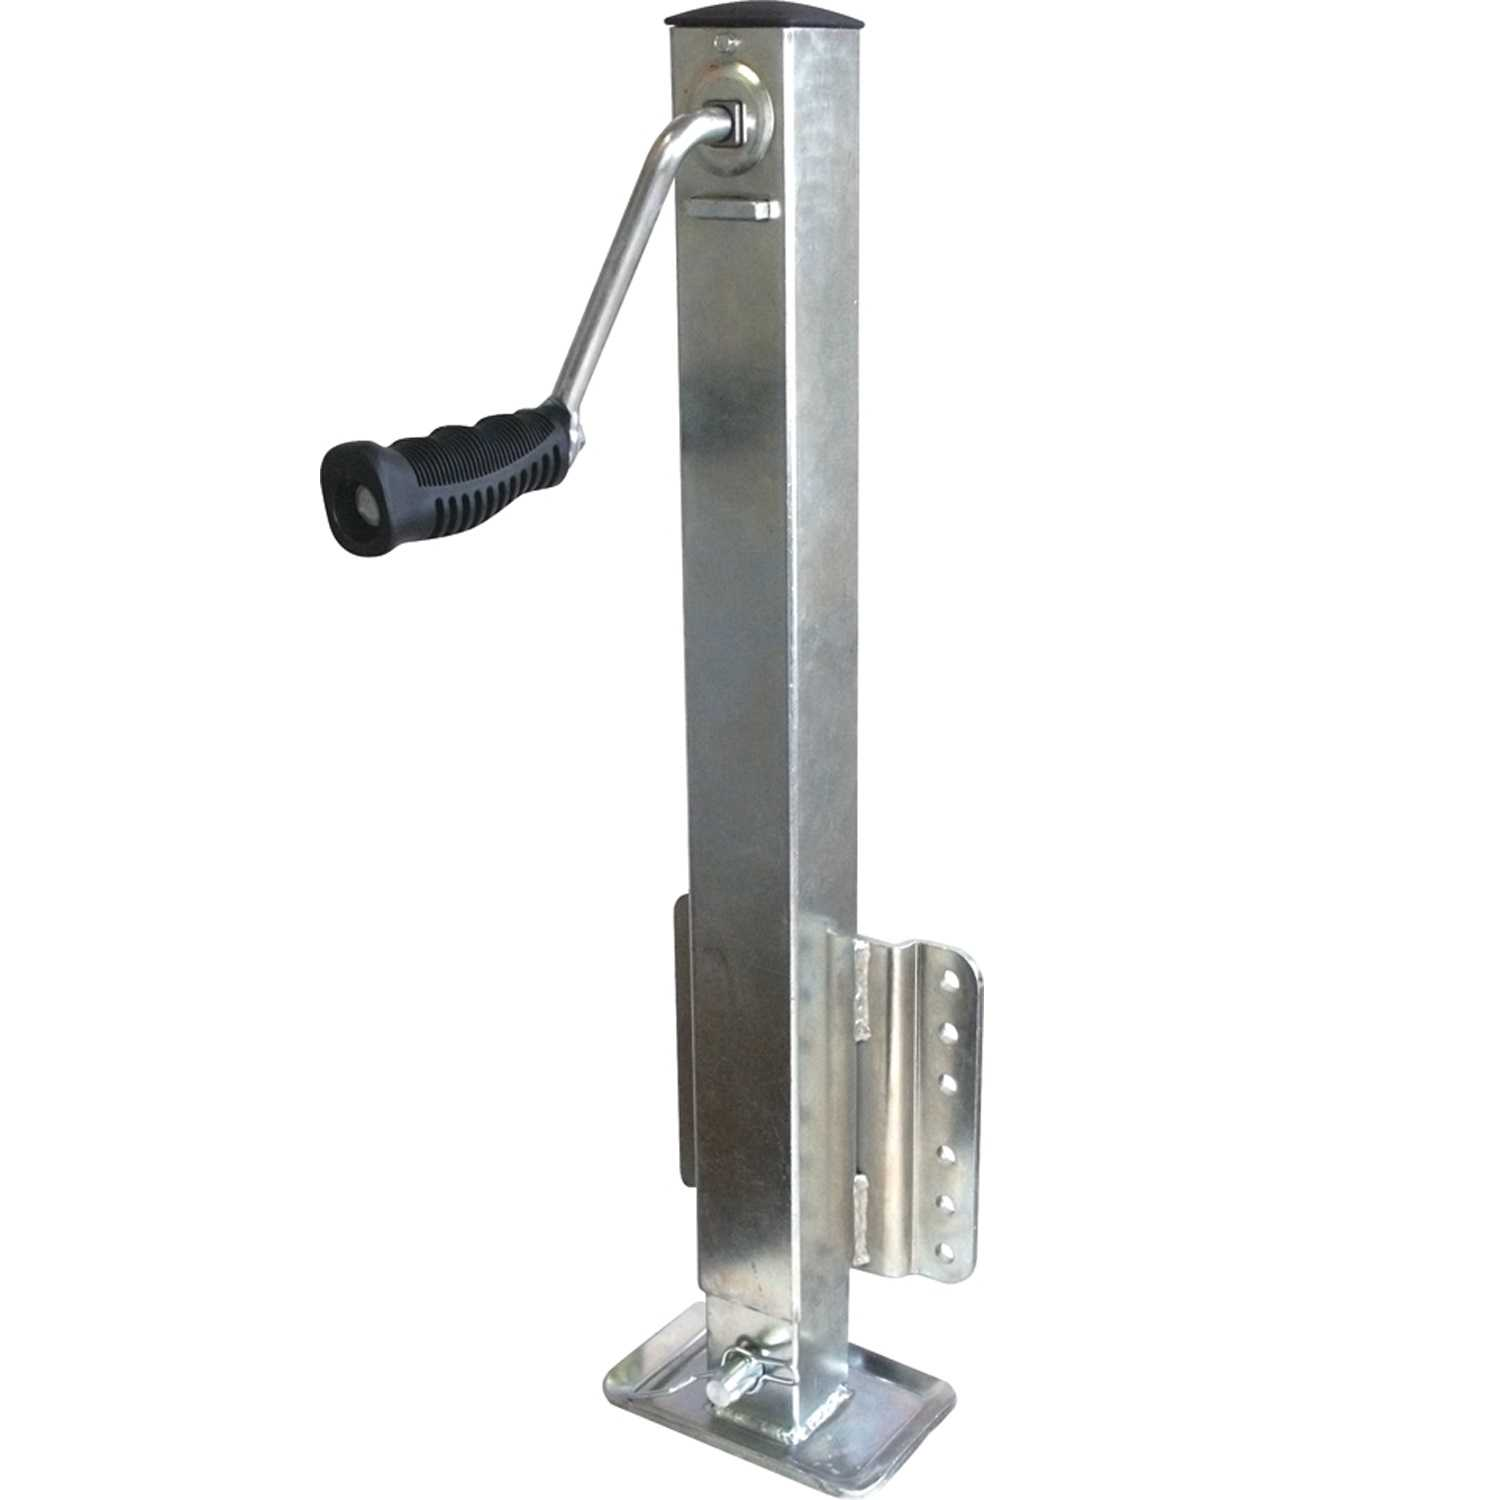 Unified Marine SeaSense 2500LB Zinc Square Tube Trailer Jack